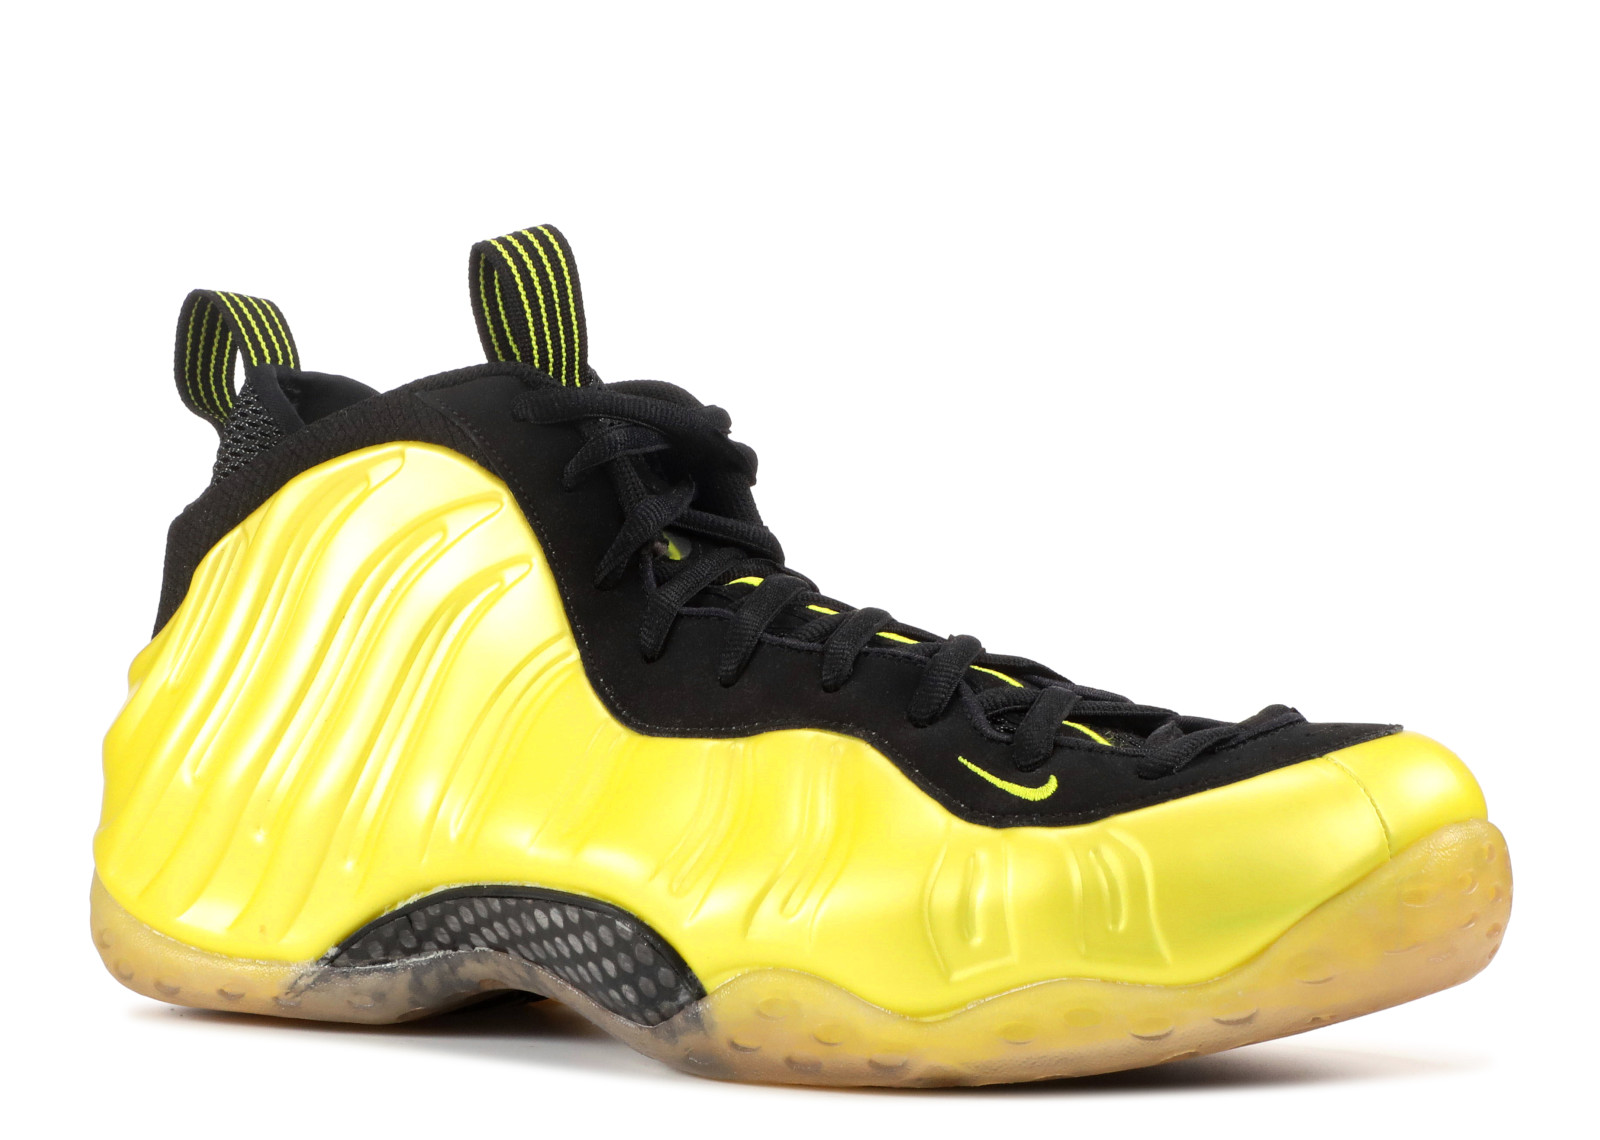 9112f7c47348b Air Foamposite One  Electrolime  - 314996-330 - Size 11.5